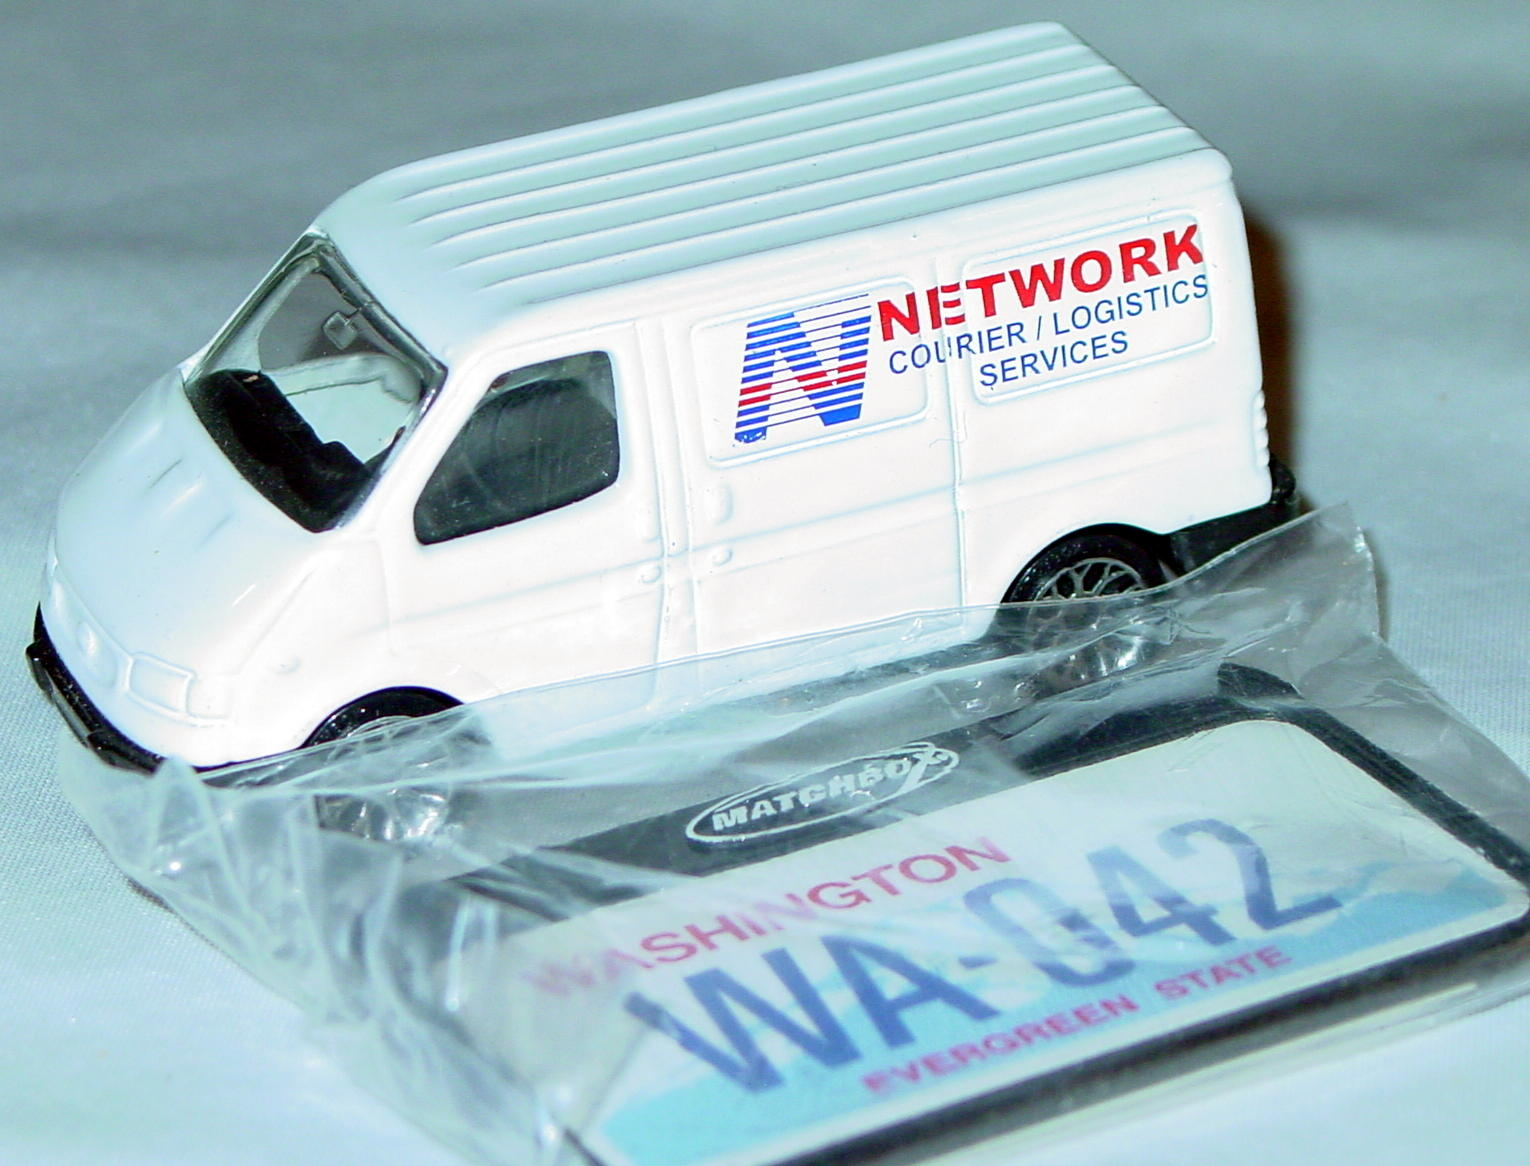 ASAP-CCI 15 K - Transit Van White Network Courier 10-spk Flow ASAP